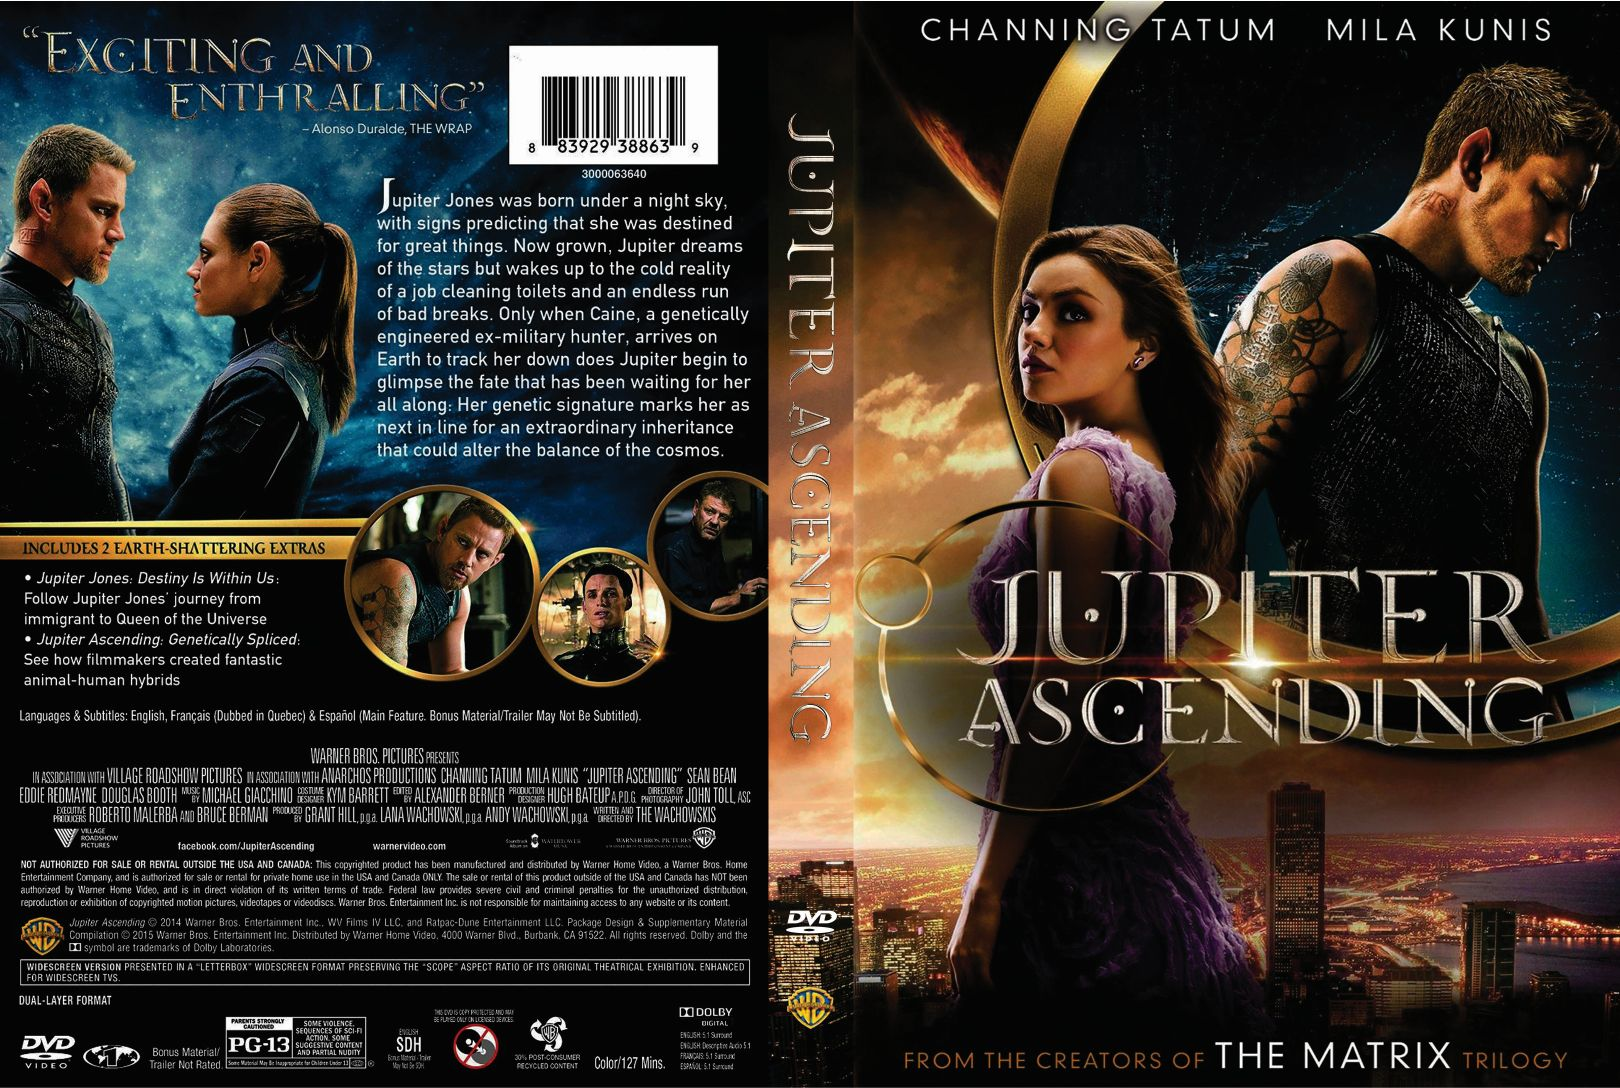 Jupiter Ascending 2015 Front Dvd Covers Cover Century Over 500 000 Album Art Covers For Free